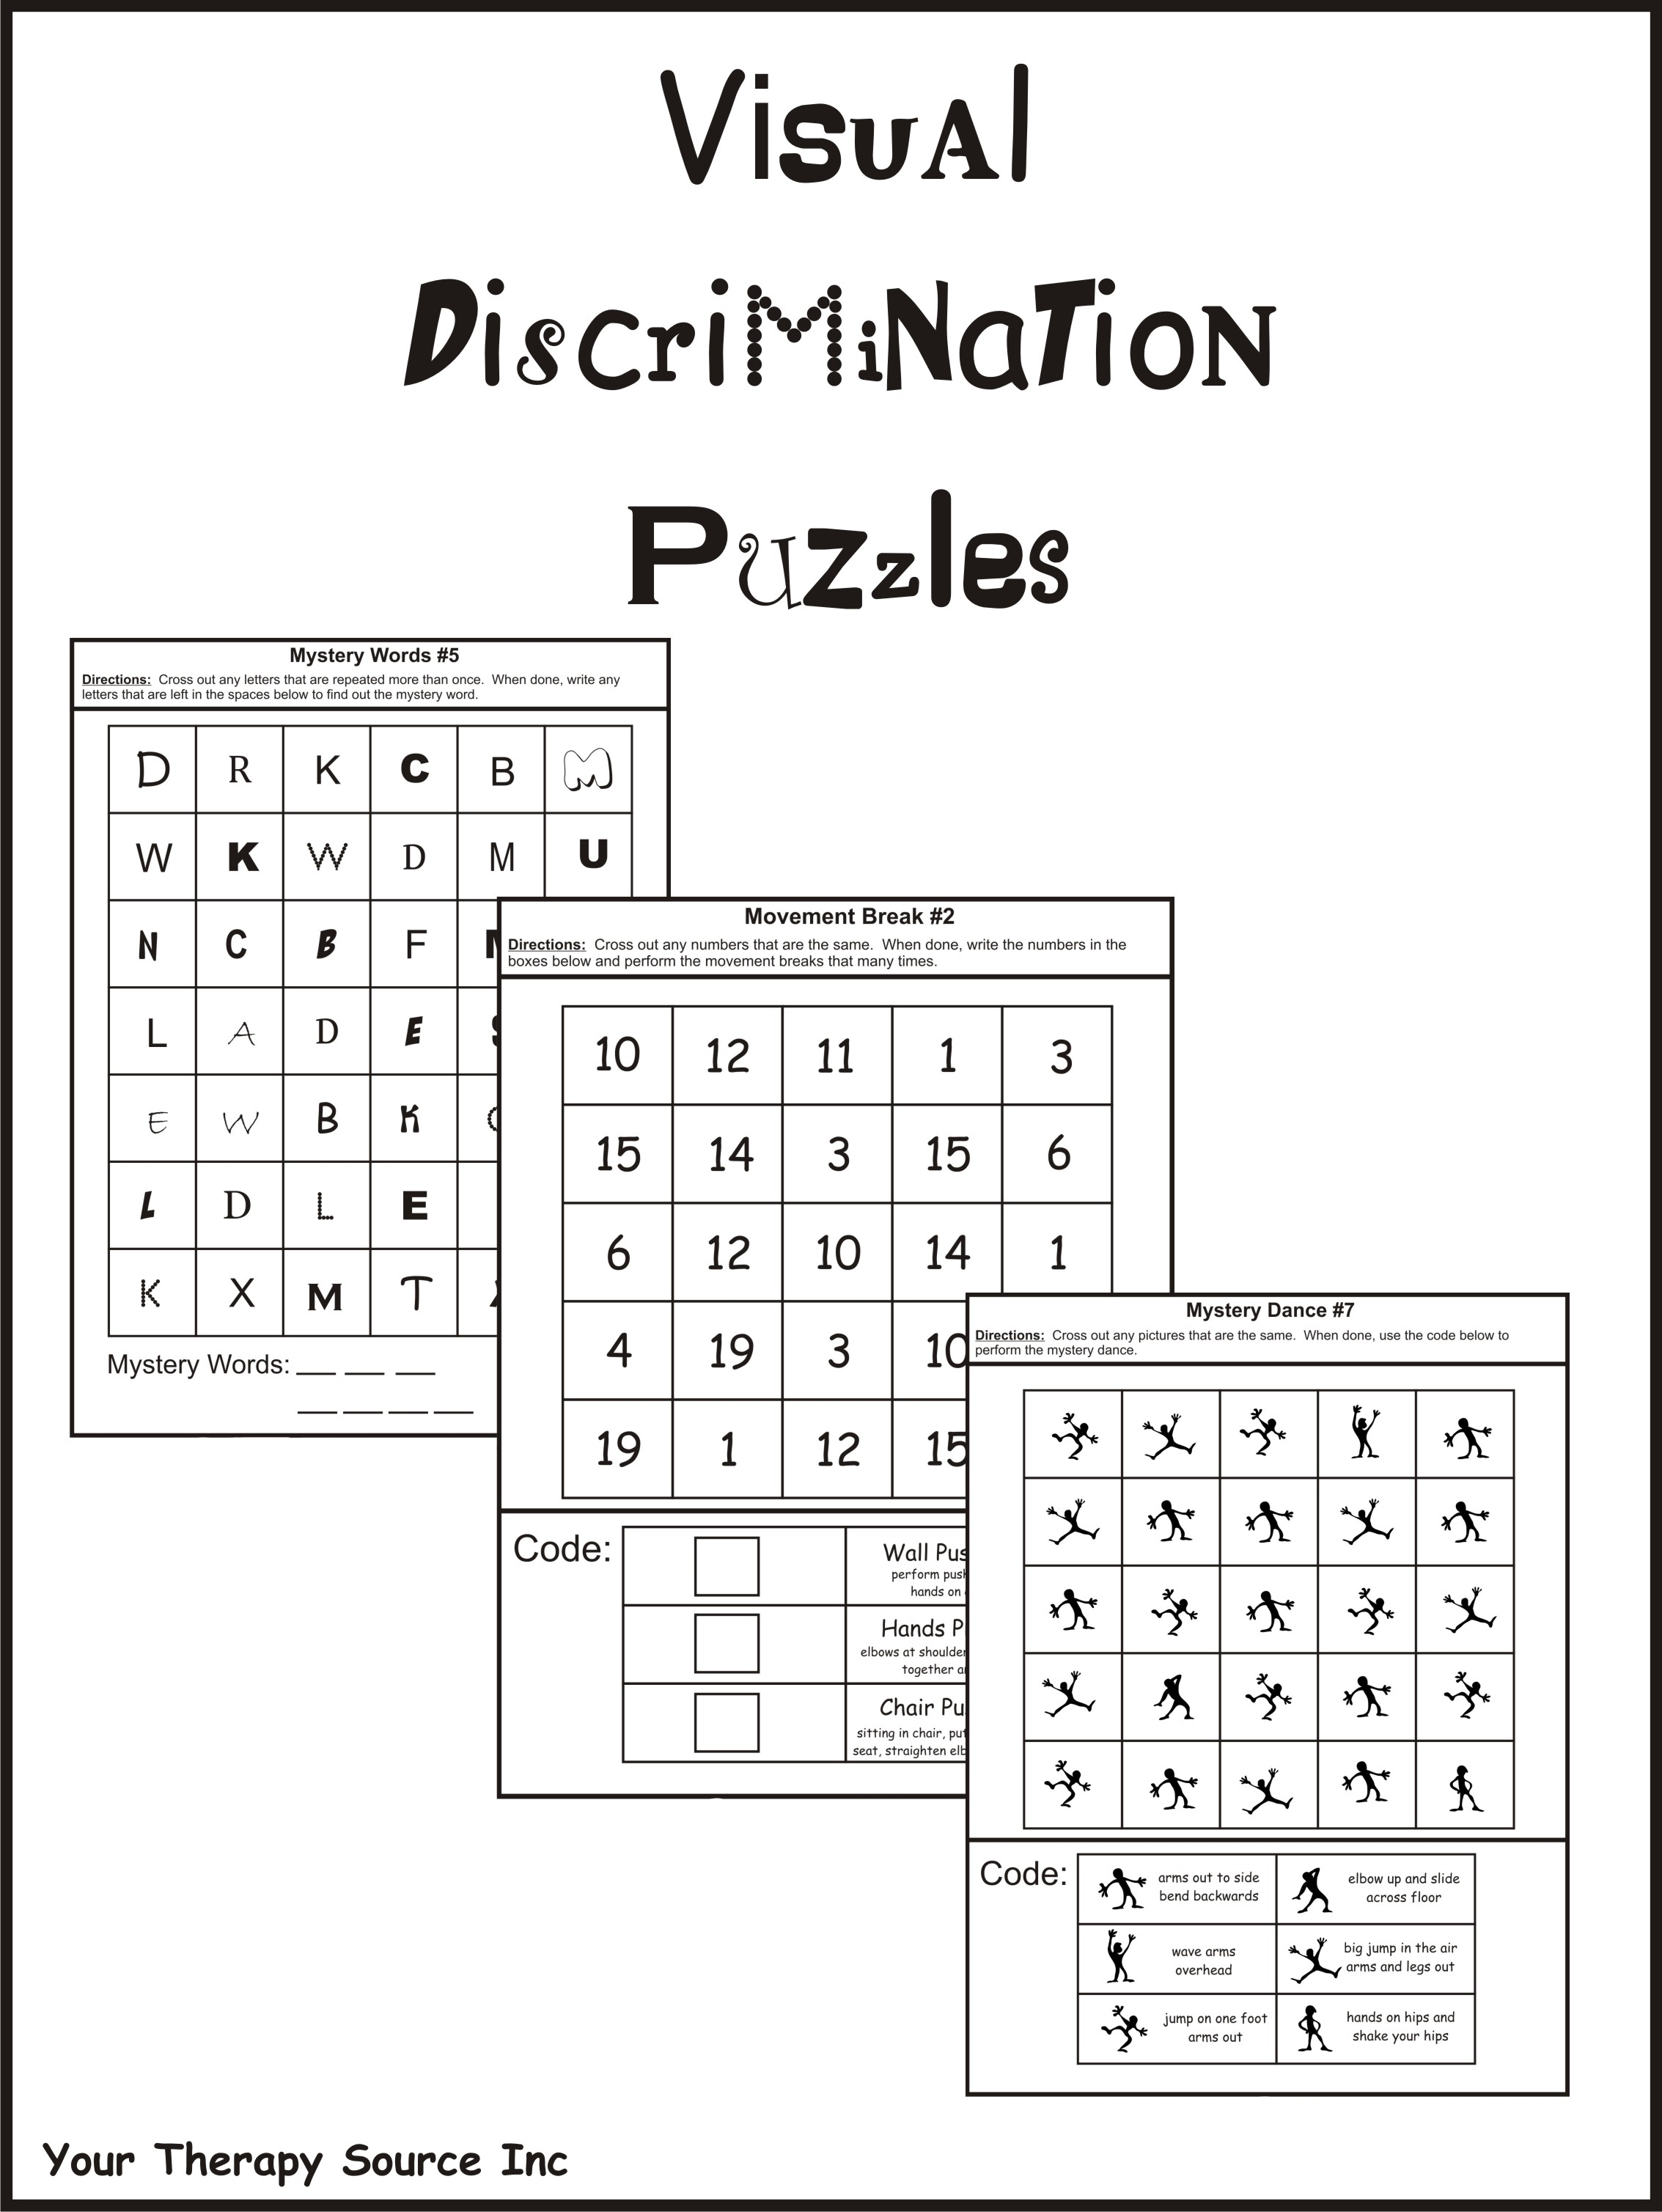 Visual Discrimination Puzzles Your Therapy Source